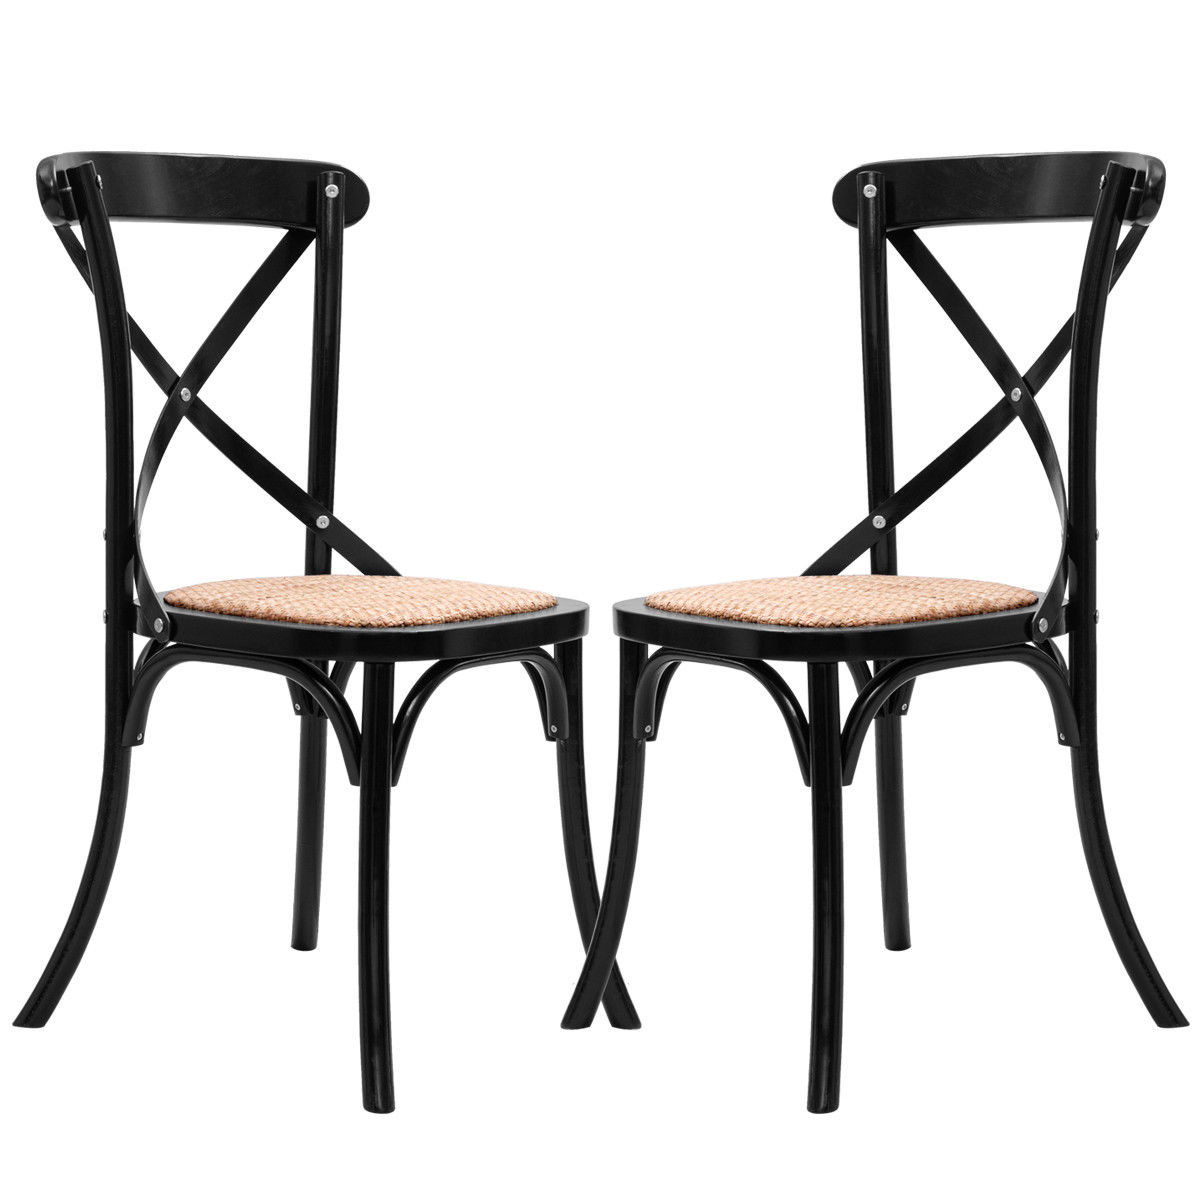 Giantex Set of 2 Cross Back Dining Side Chair Solid Wood Rattan Seat Modern Living Room Dining Room Furniture HW56269BK classical rosewood armchair backed china retro antique chair with handrails solid wood living dining room furniture factory set